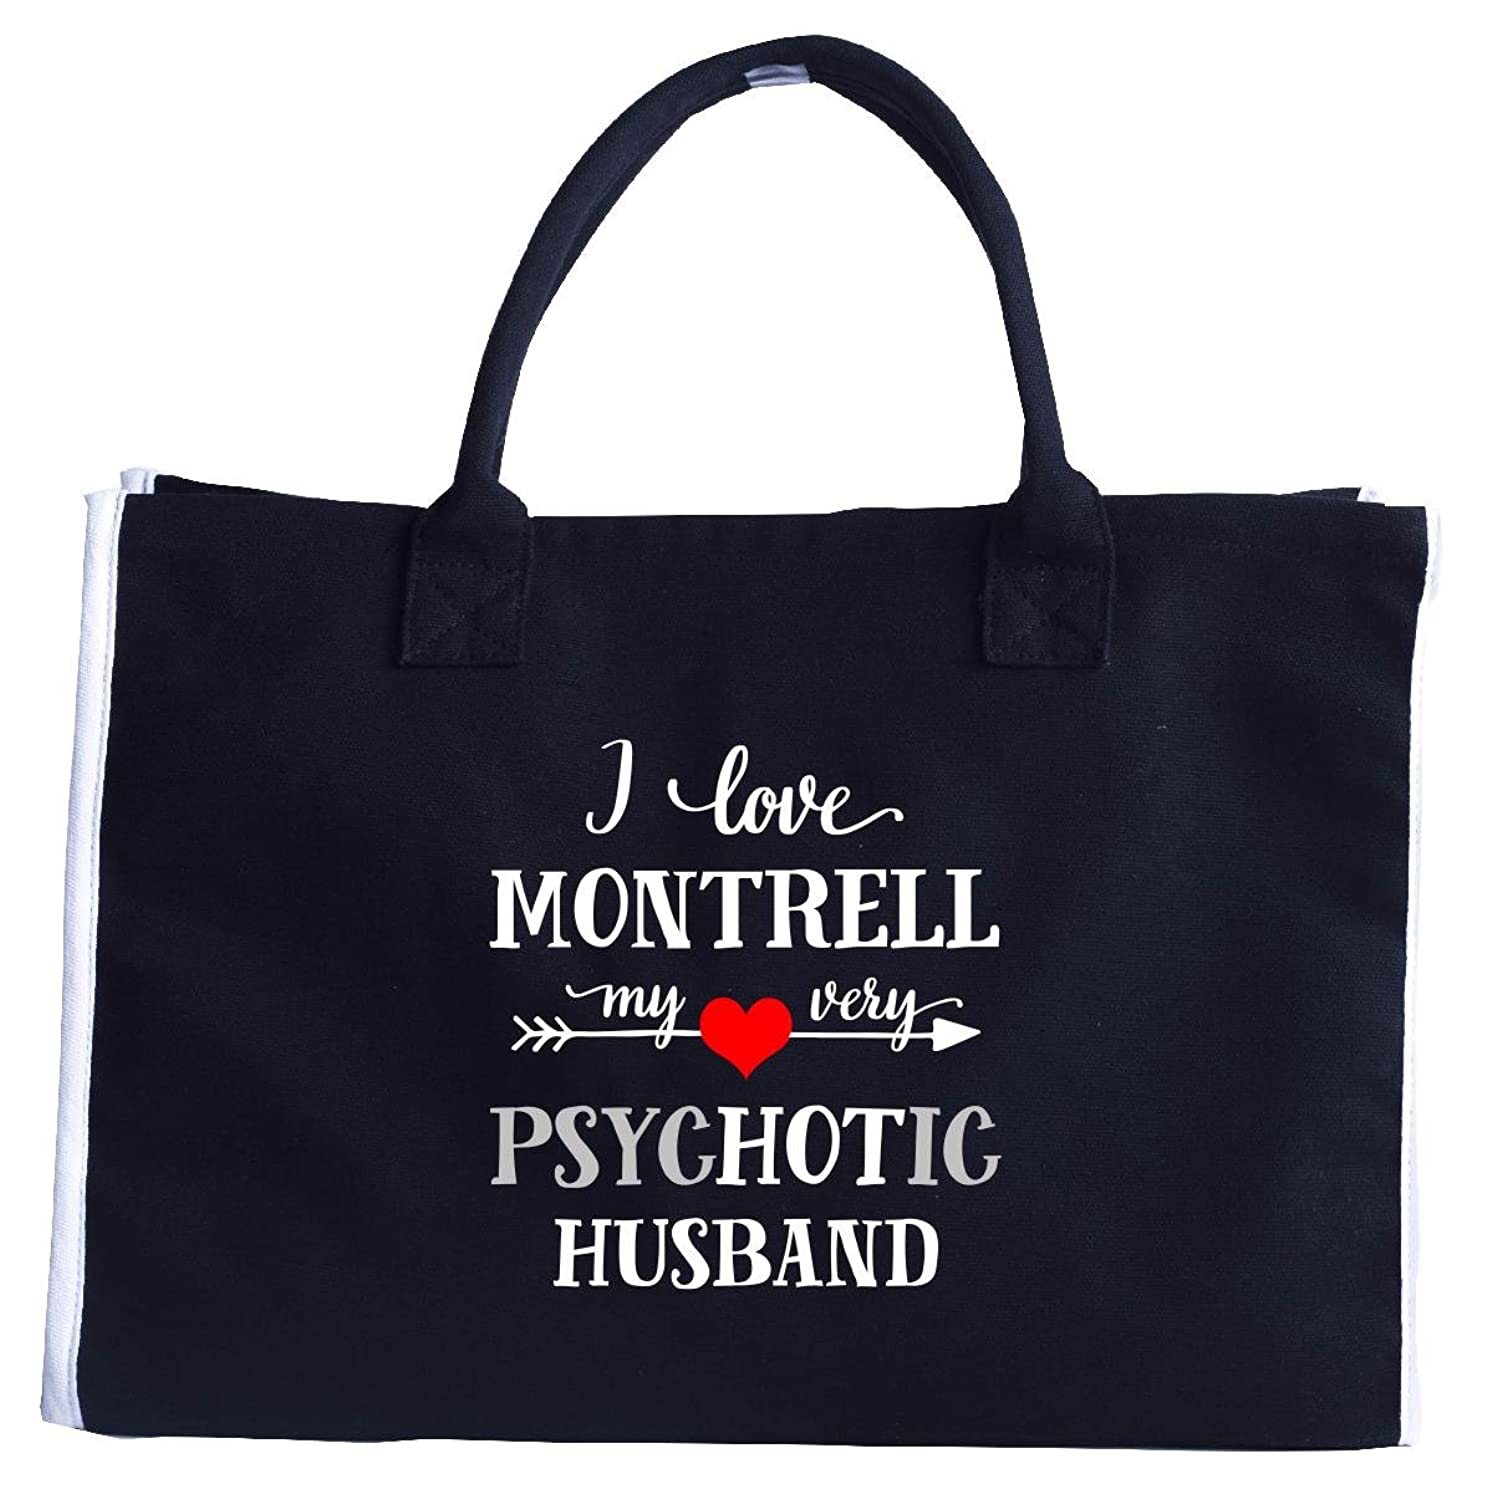 I Love Montrell My Very Psychotic Husband. Gift For Her - Fashion Tote Bag